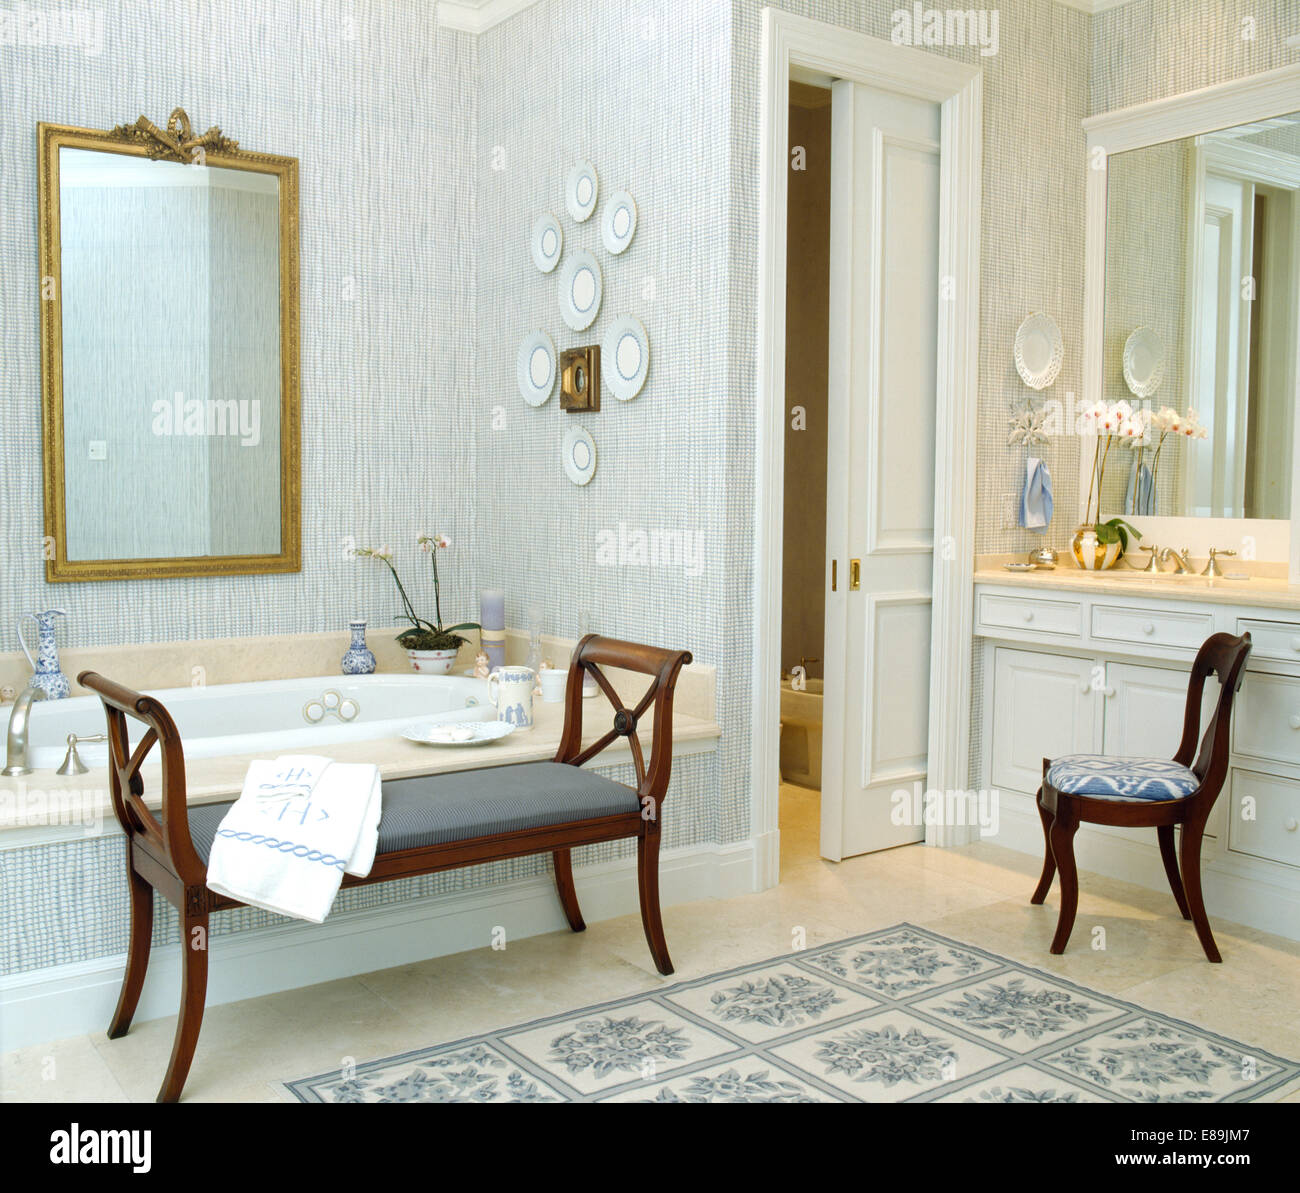 Blue Wallpaper And Large Gilt Mirror In Traditional Bathroom With Sliding  Door And Antique Stool And Chair